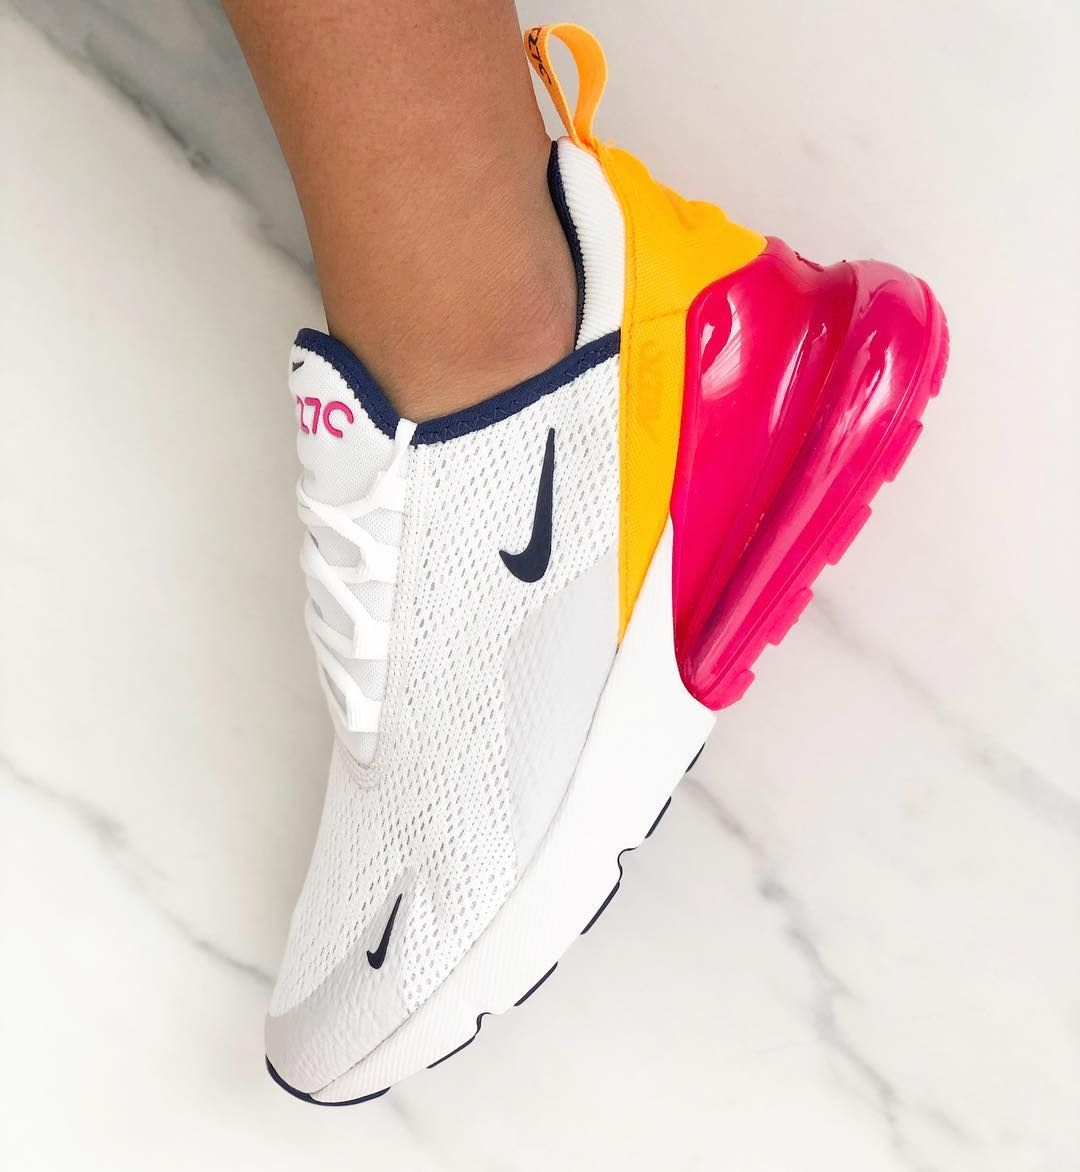 Nike Air Max 270 Shoes White Yellow Red Red Nike Shoes All Red Nike Shoes Red Nike Shoes Womens